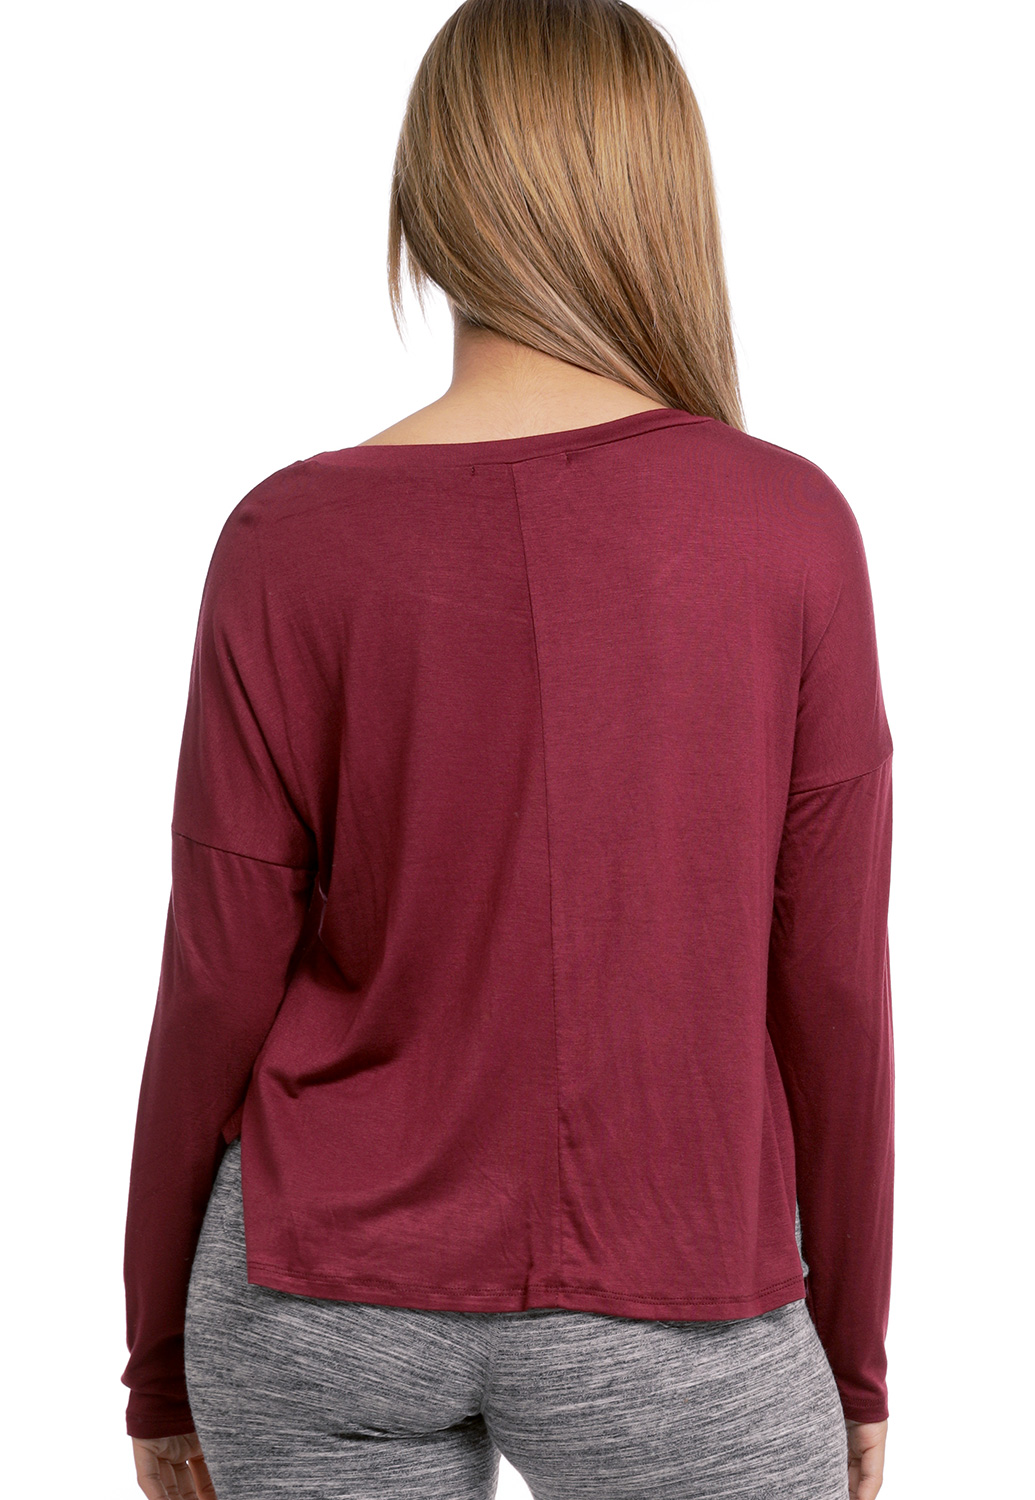 Knotted Long Sleeve Top